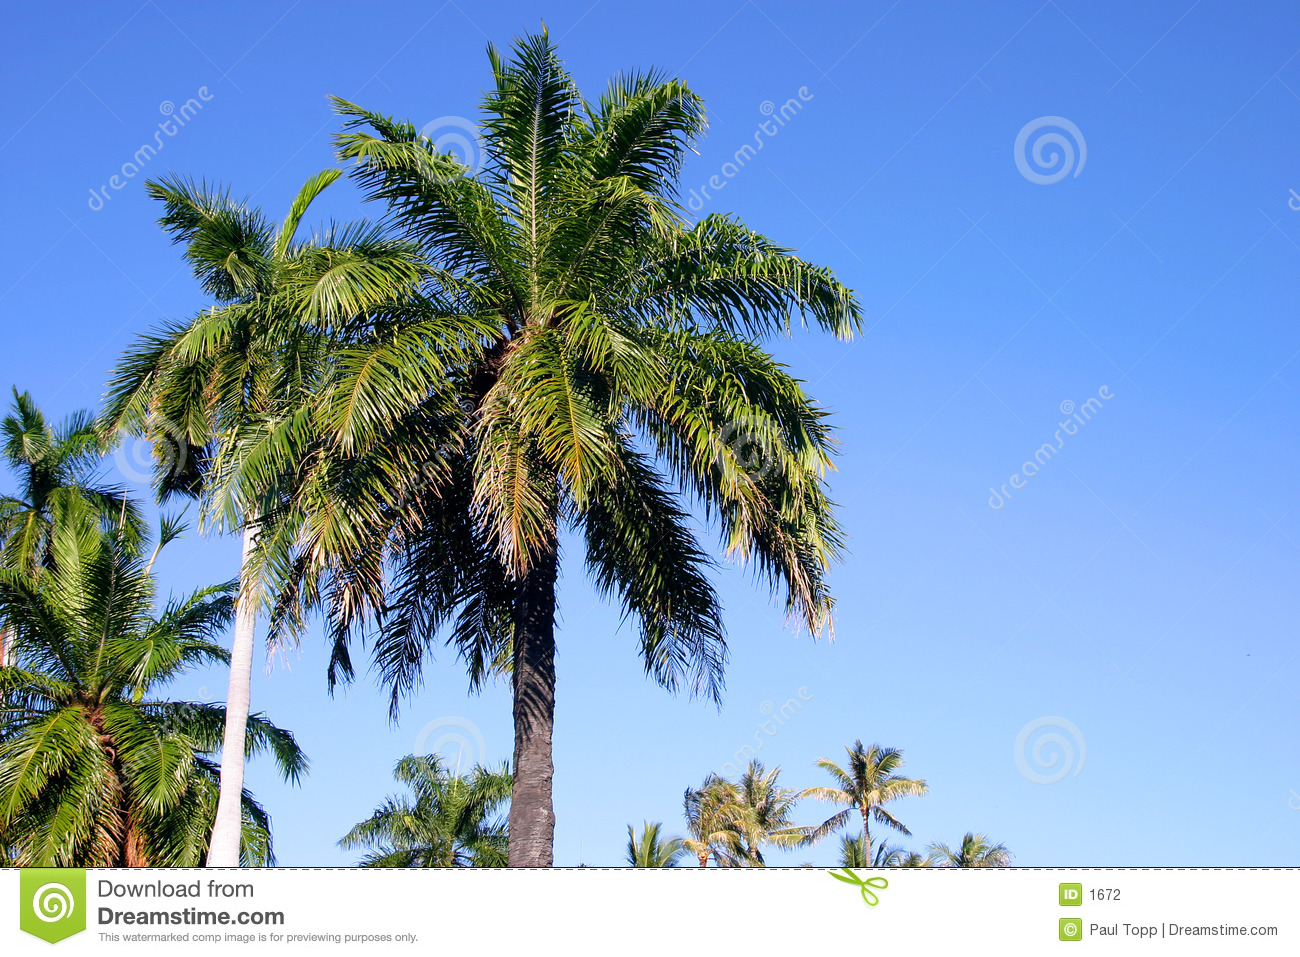 Palm Trees and Blue Sky in Hawaii